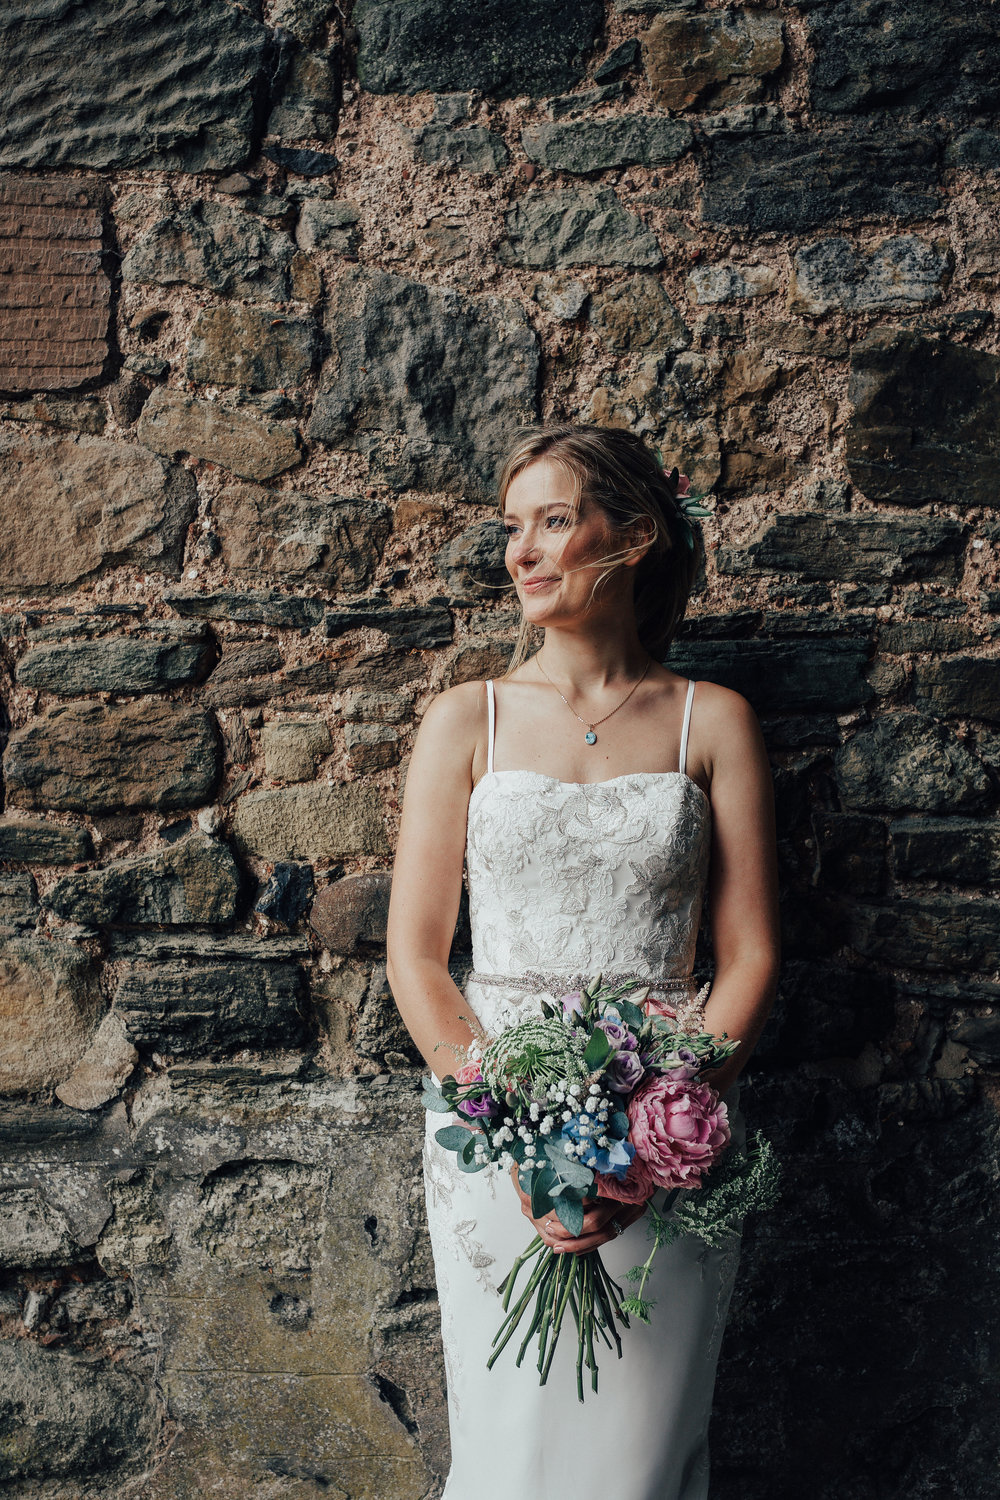 PJ_PHILLIPS_PHOTOGRAPHY_EDINBURGH_WEDDERBURN_BARNS_WEDDING_EDINBURGH_WEDDING_PHOTOGRAPHER_102.jpg